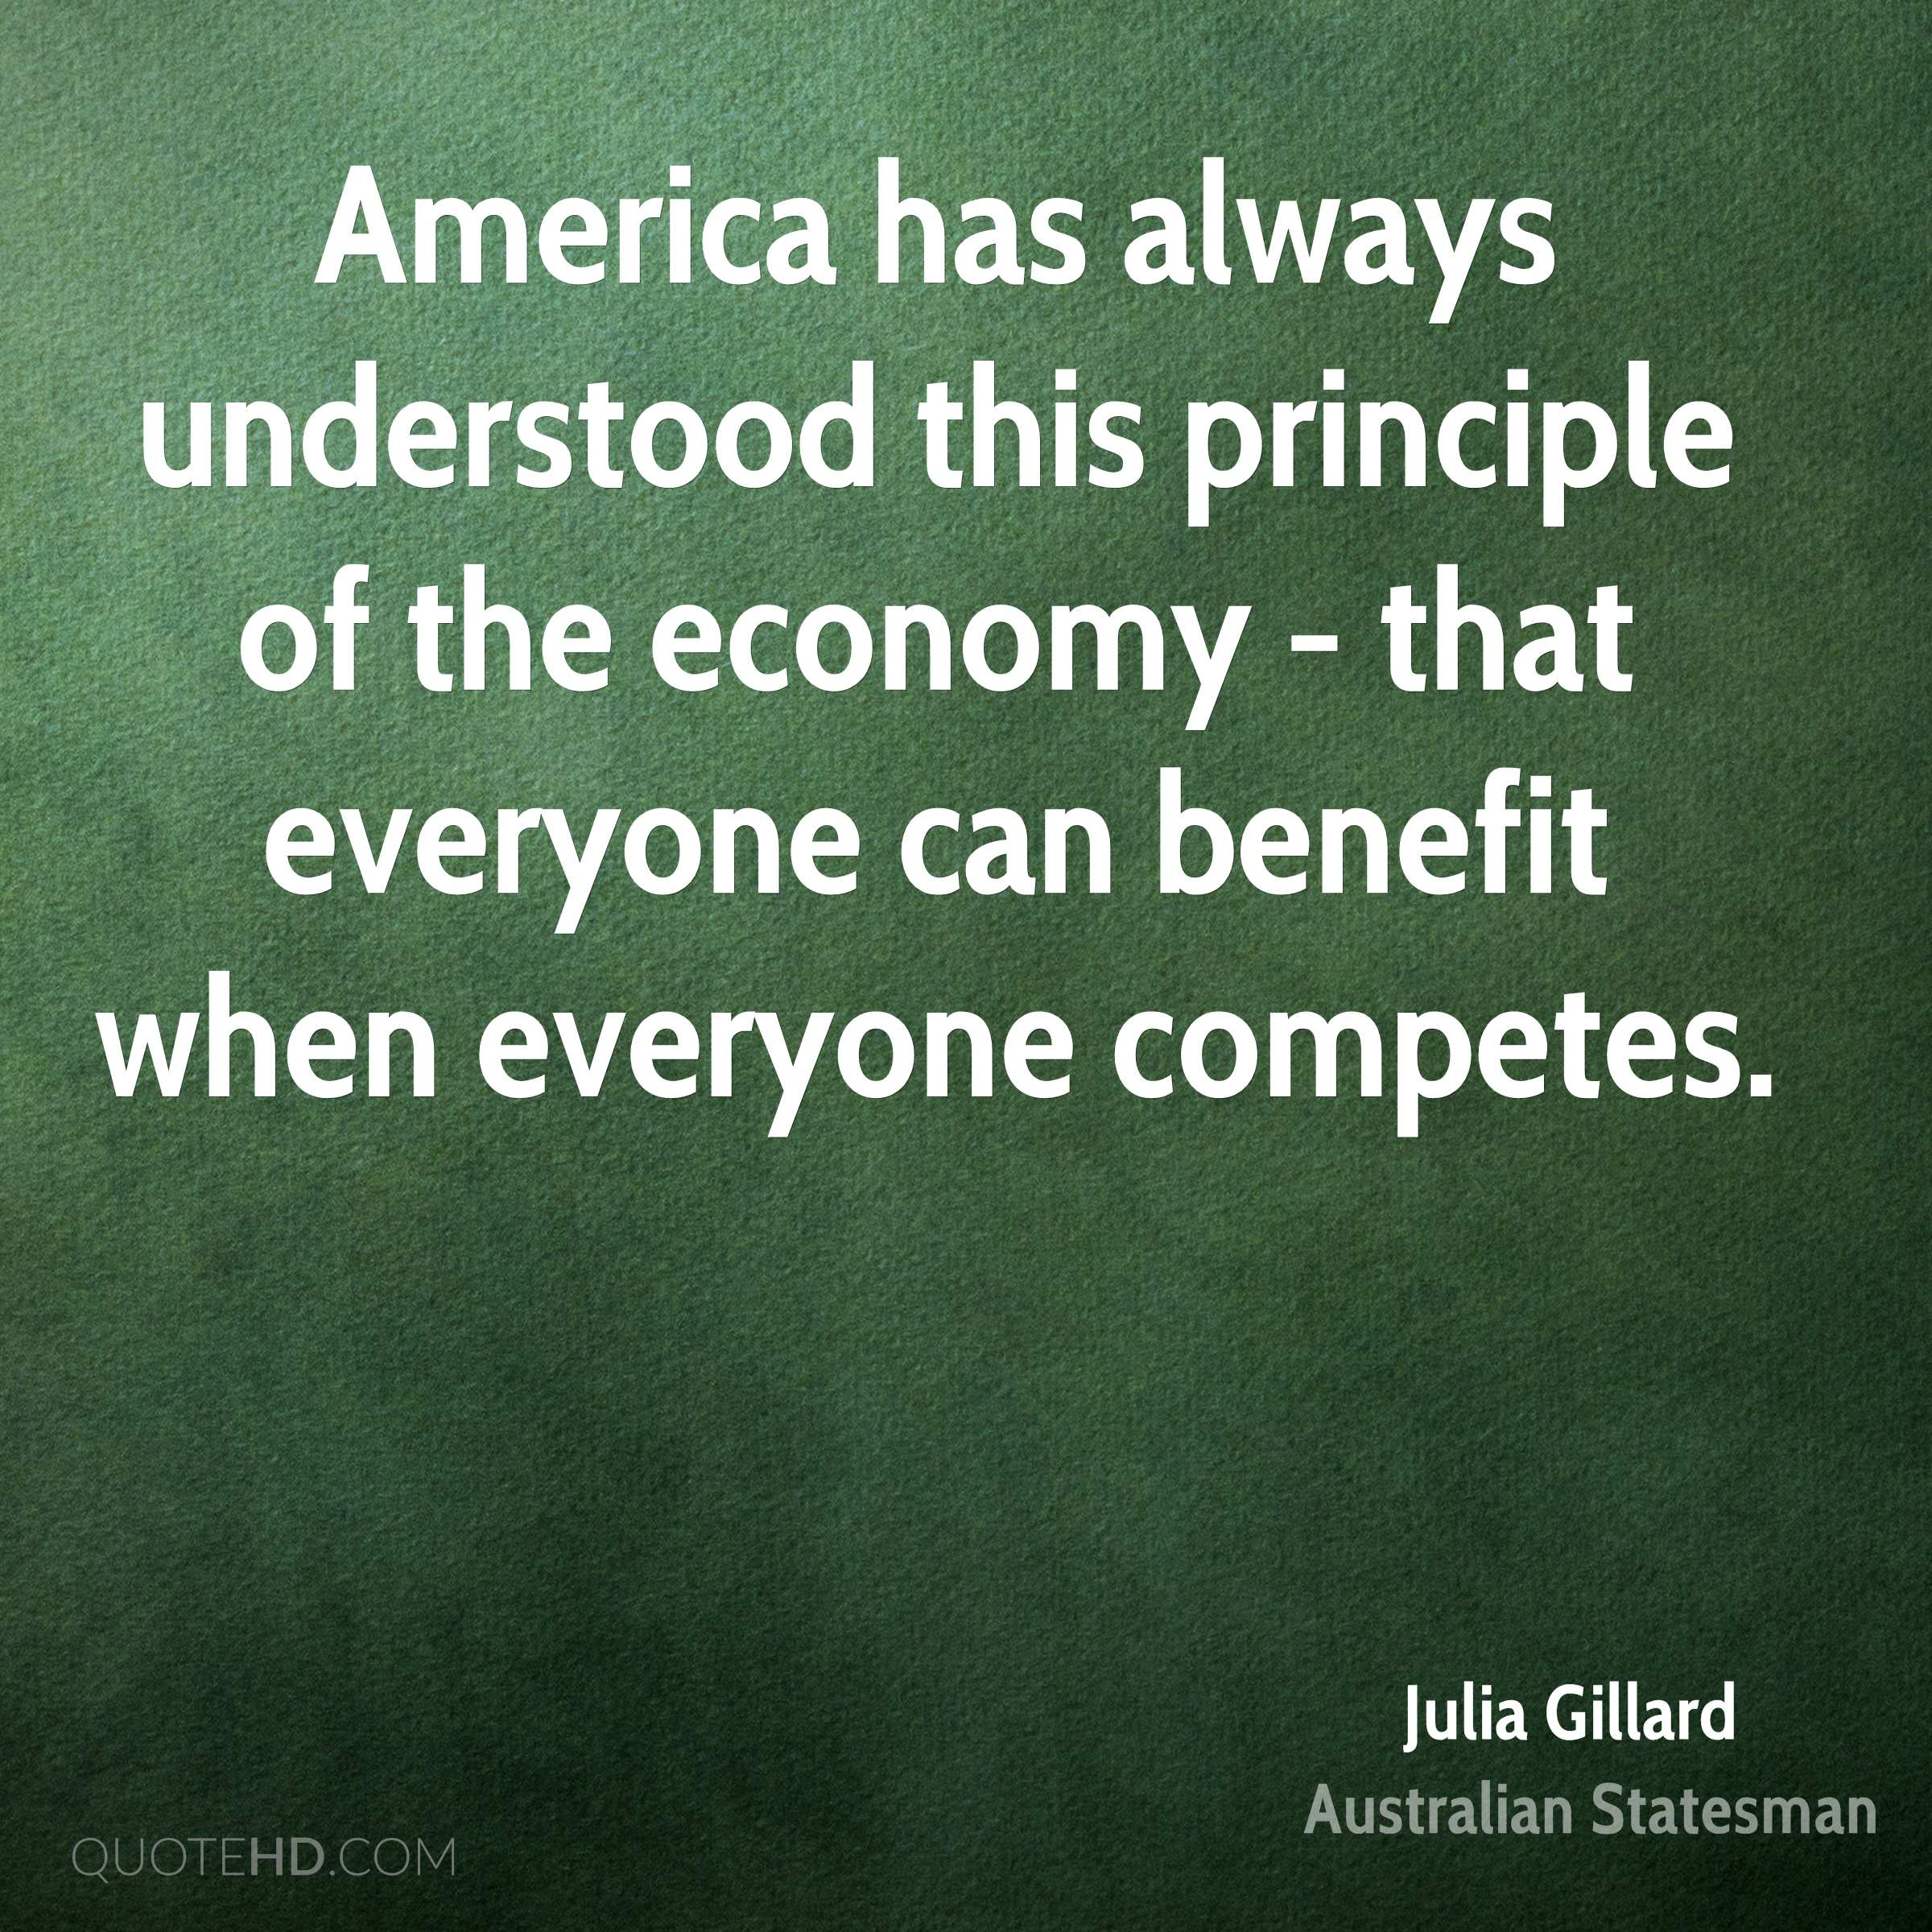 America has always understood this principle of the economy - that everyone can benefit when everyone competes.